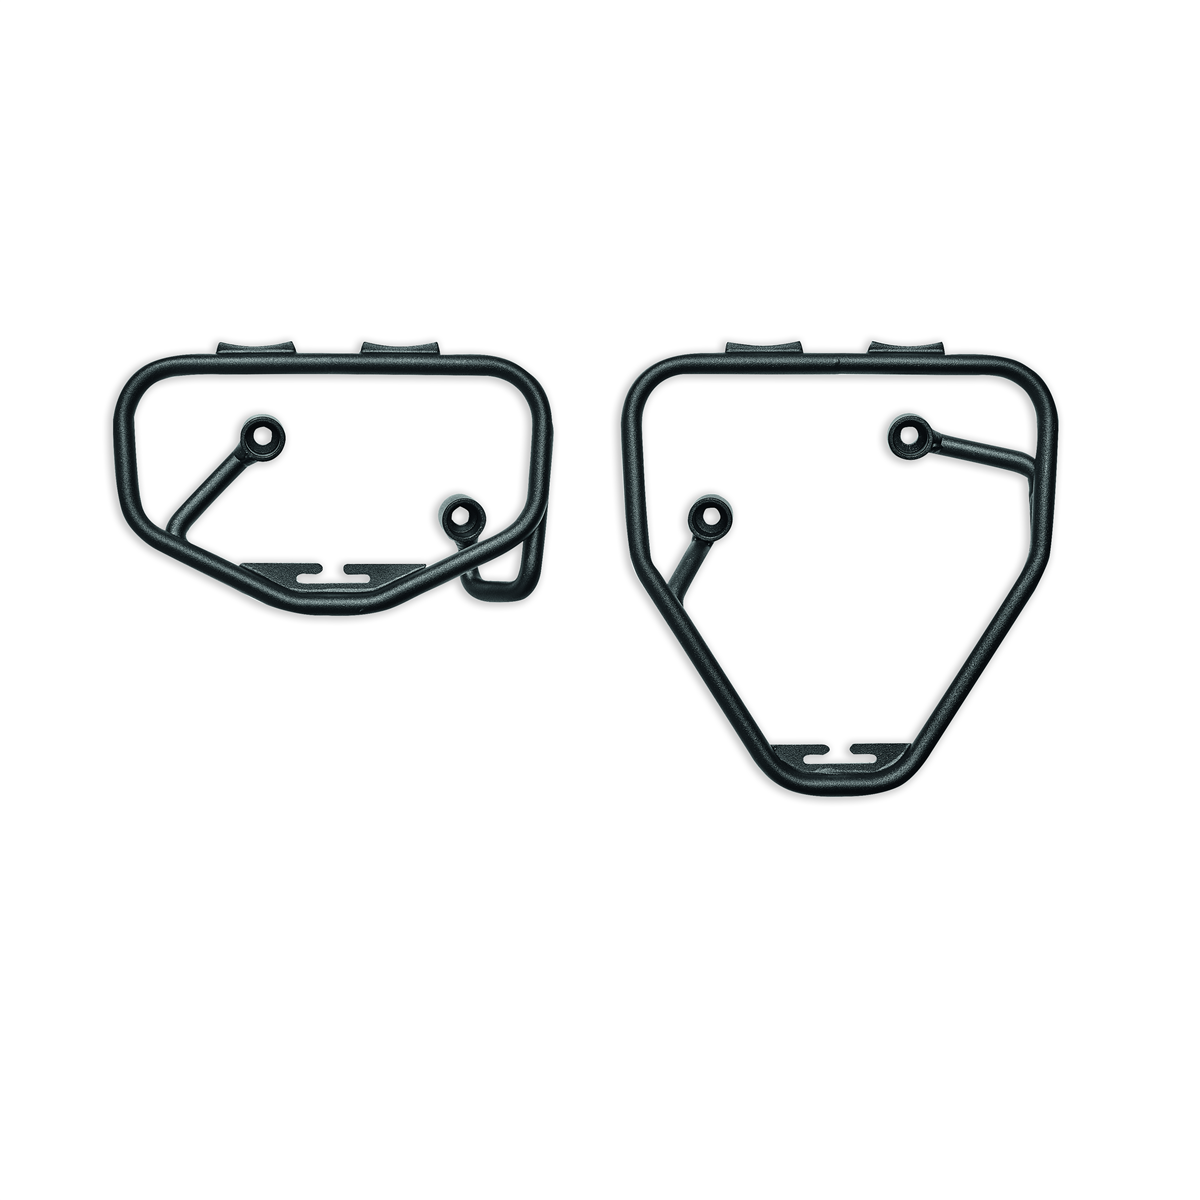 Brackets for soft side bags.